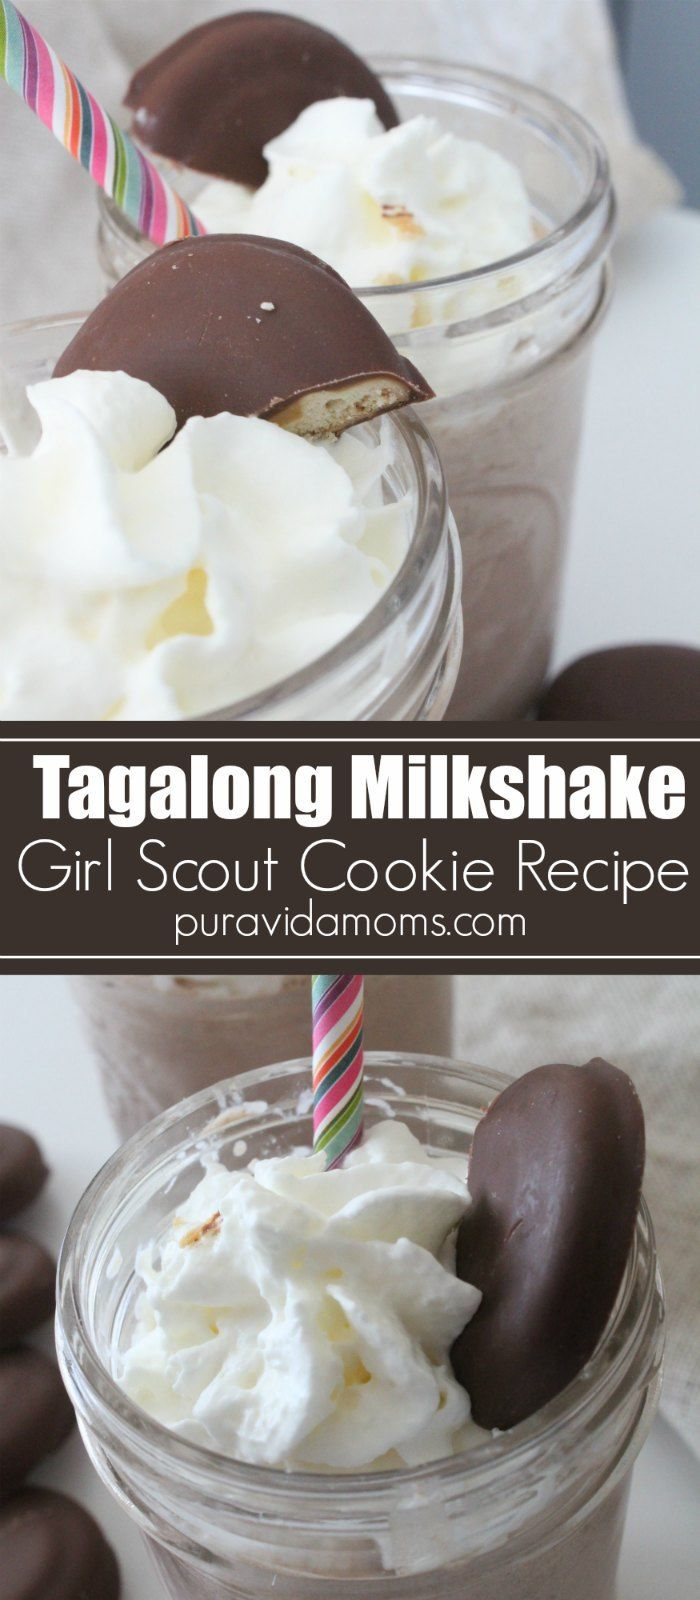 This Girl Scout Cookie Milkshake is the perfect place to dunk a Tagalong cookie. An easy dessert recipe that whole family will enjoy as a special treat! #girlscoutcookies #milkshake #dessert